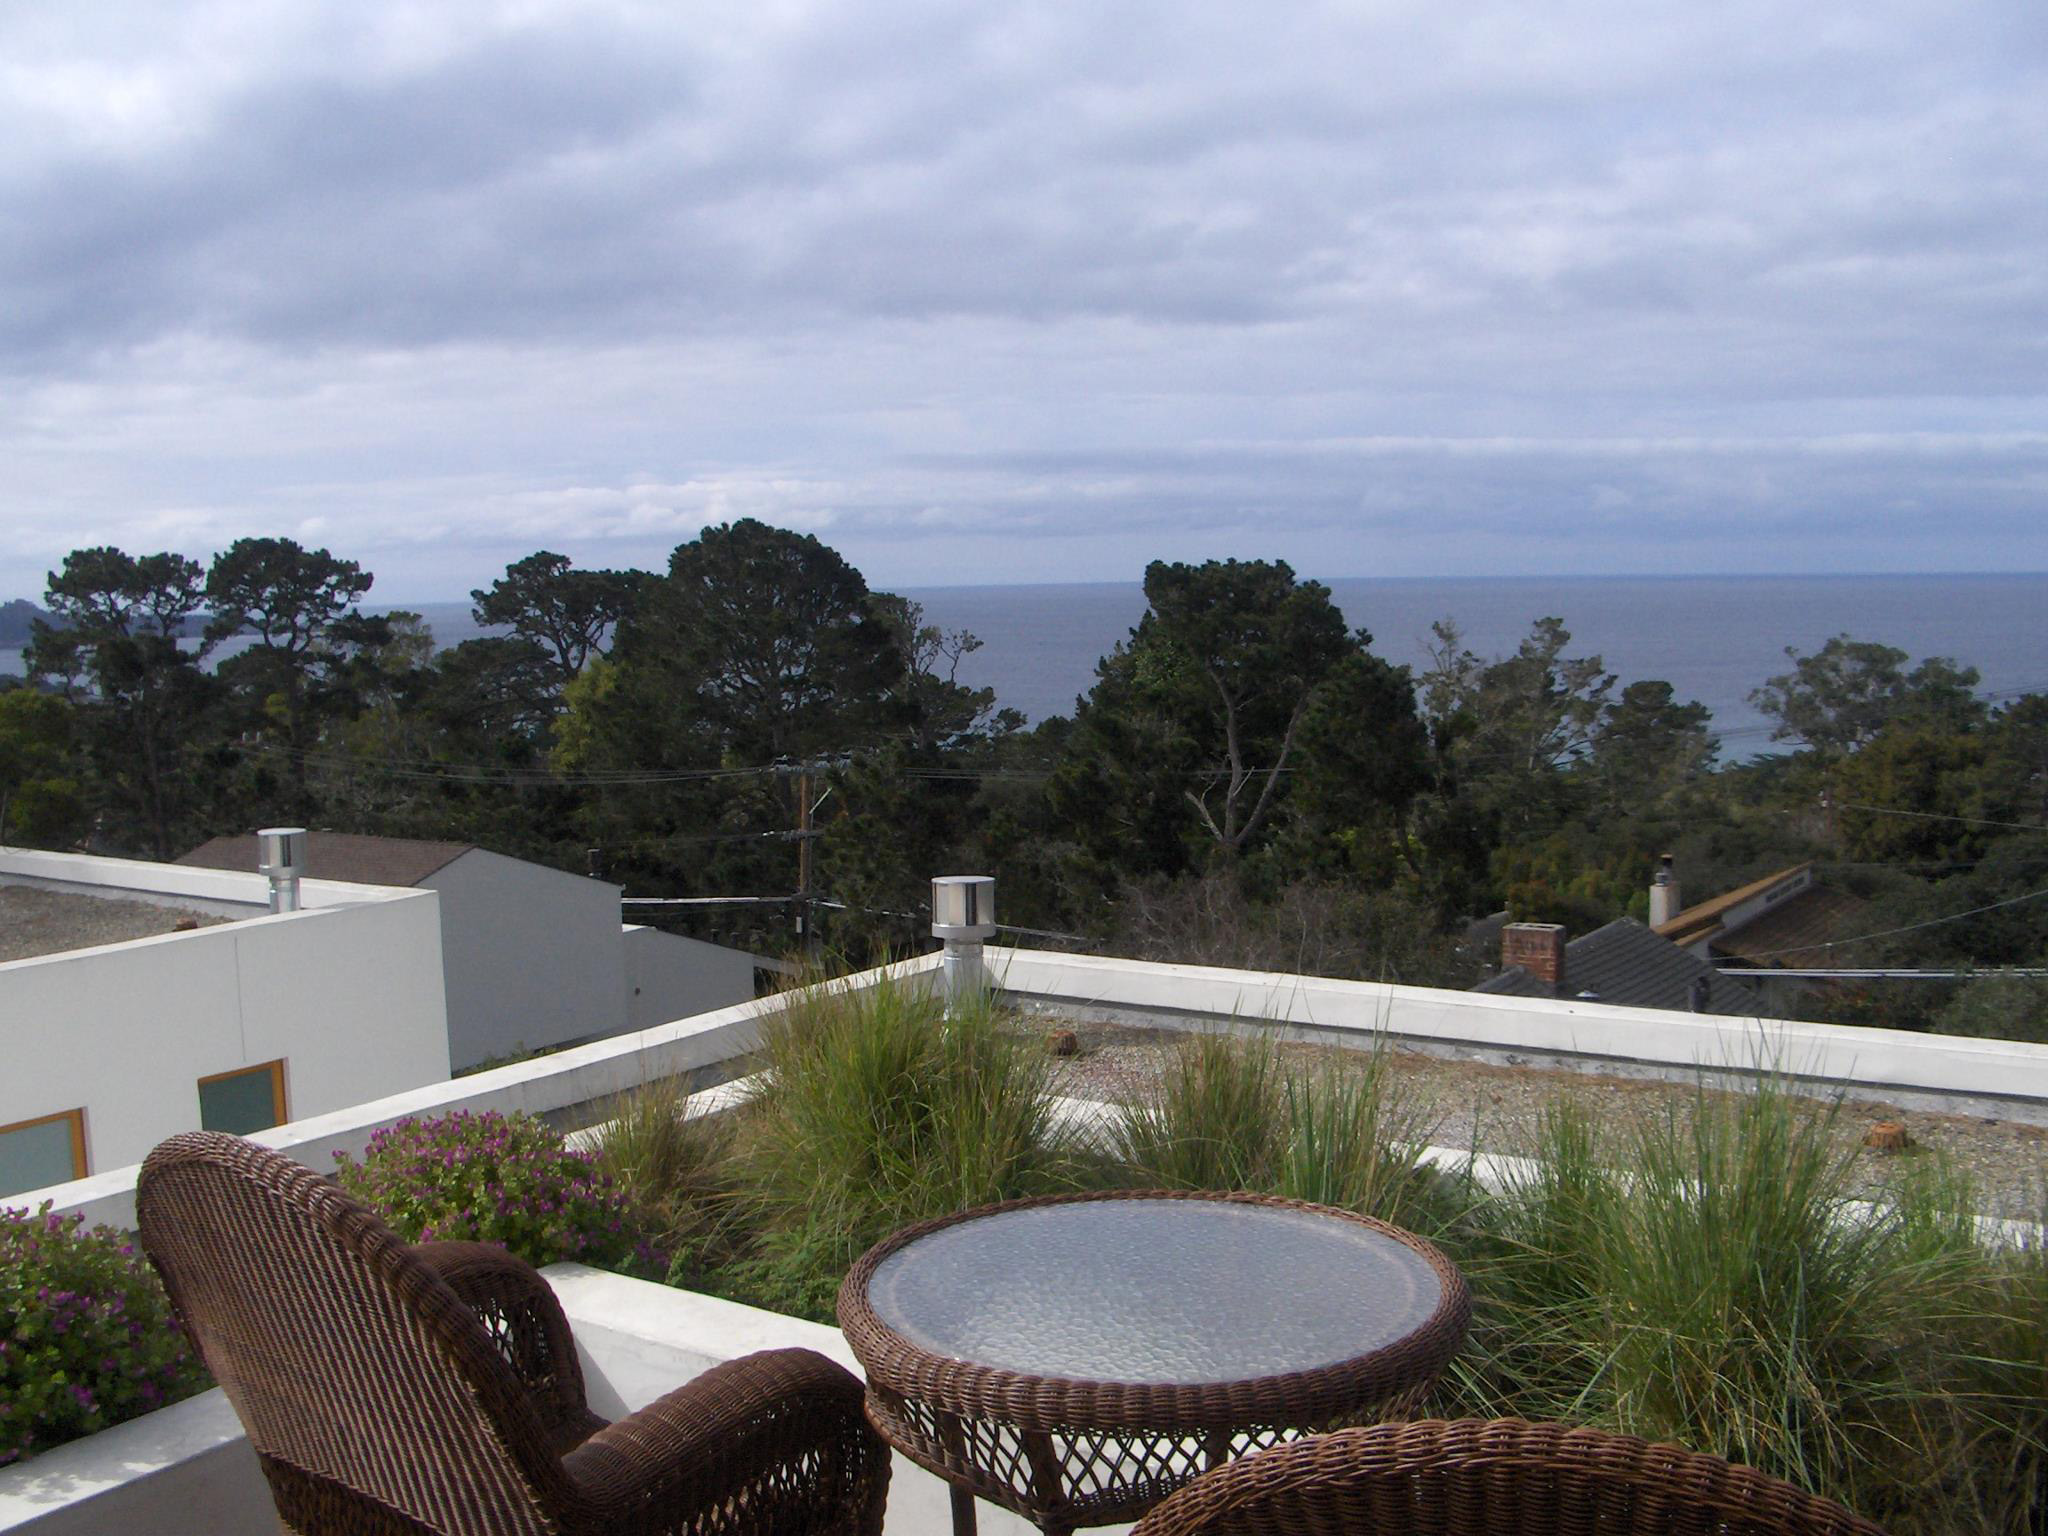 Tally Ho Inn Ocean View Decks, fireplaces, suites, jacuzzis with room service and electric car charging Carmel, Ca 93921